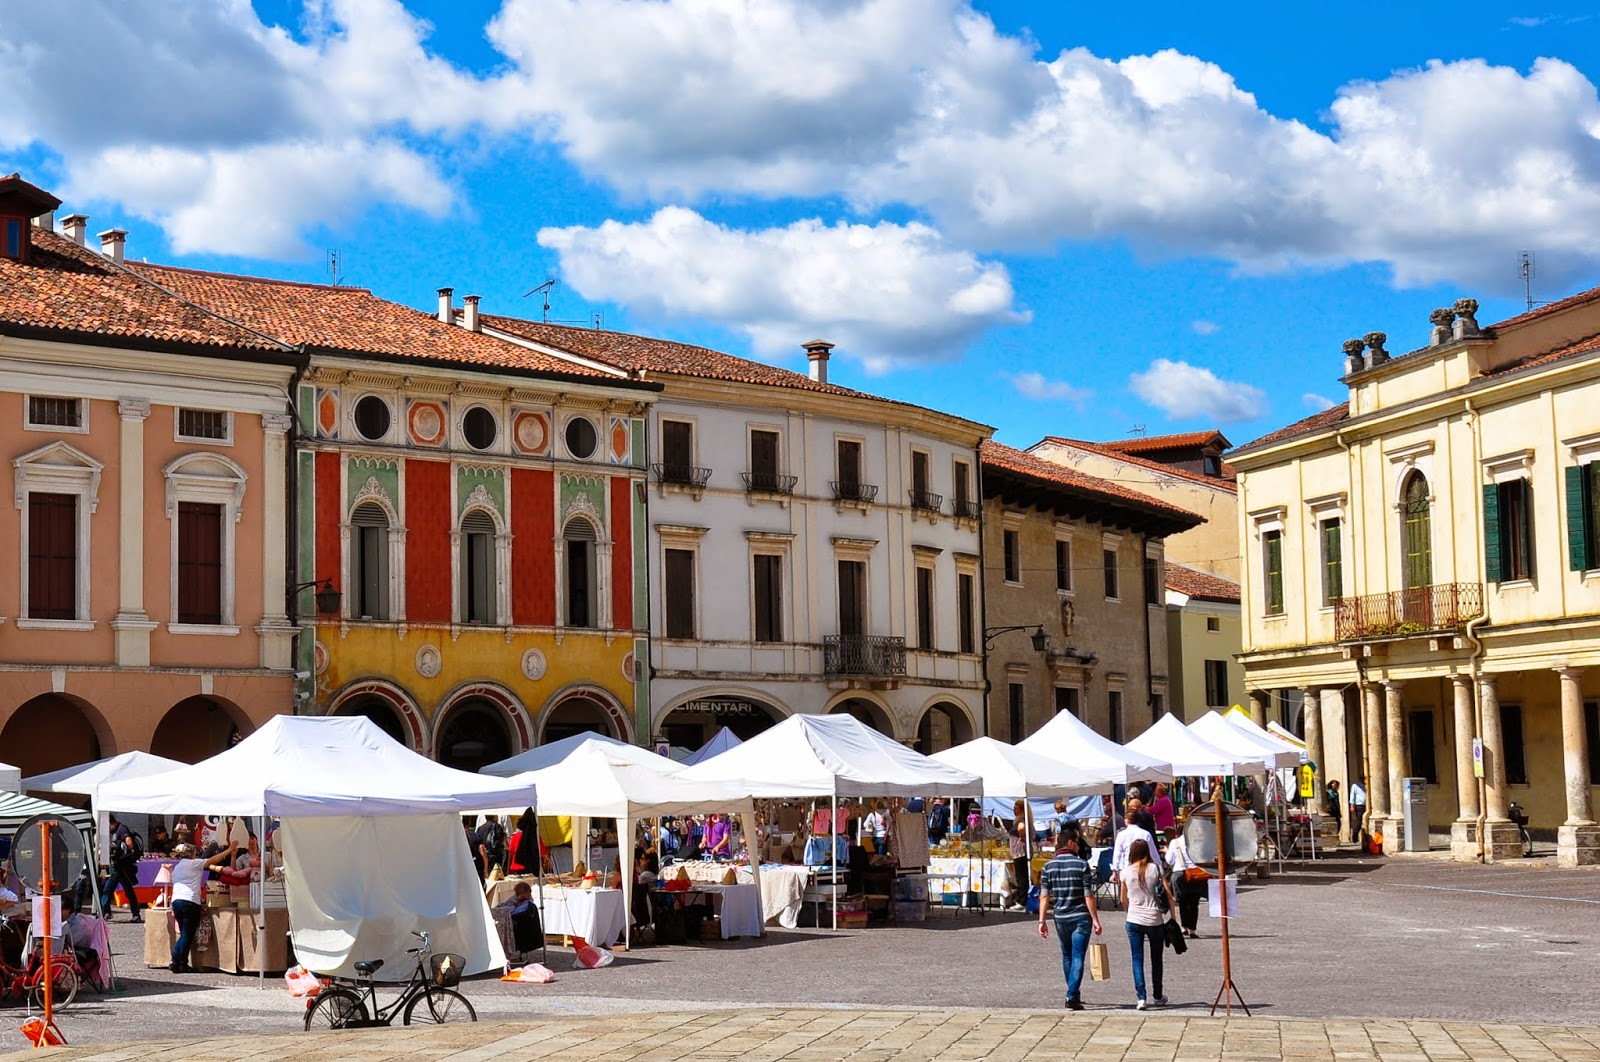 The antiques fair on the central square of Montagnana, Veneto, Italy